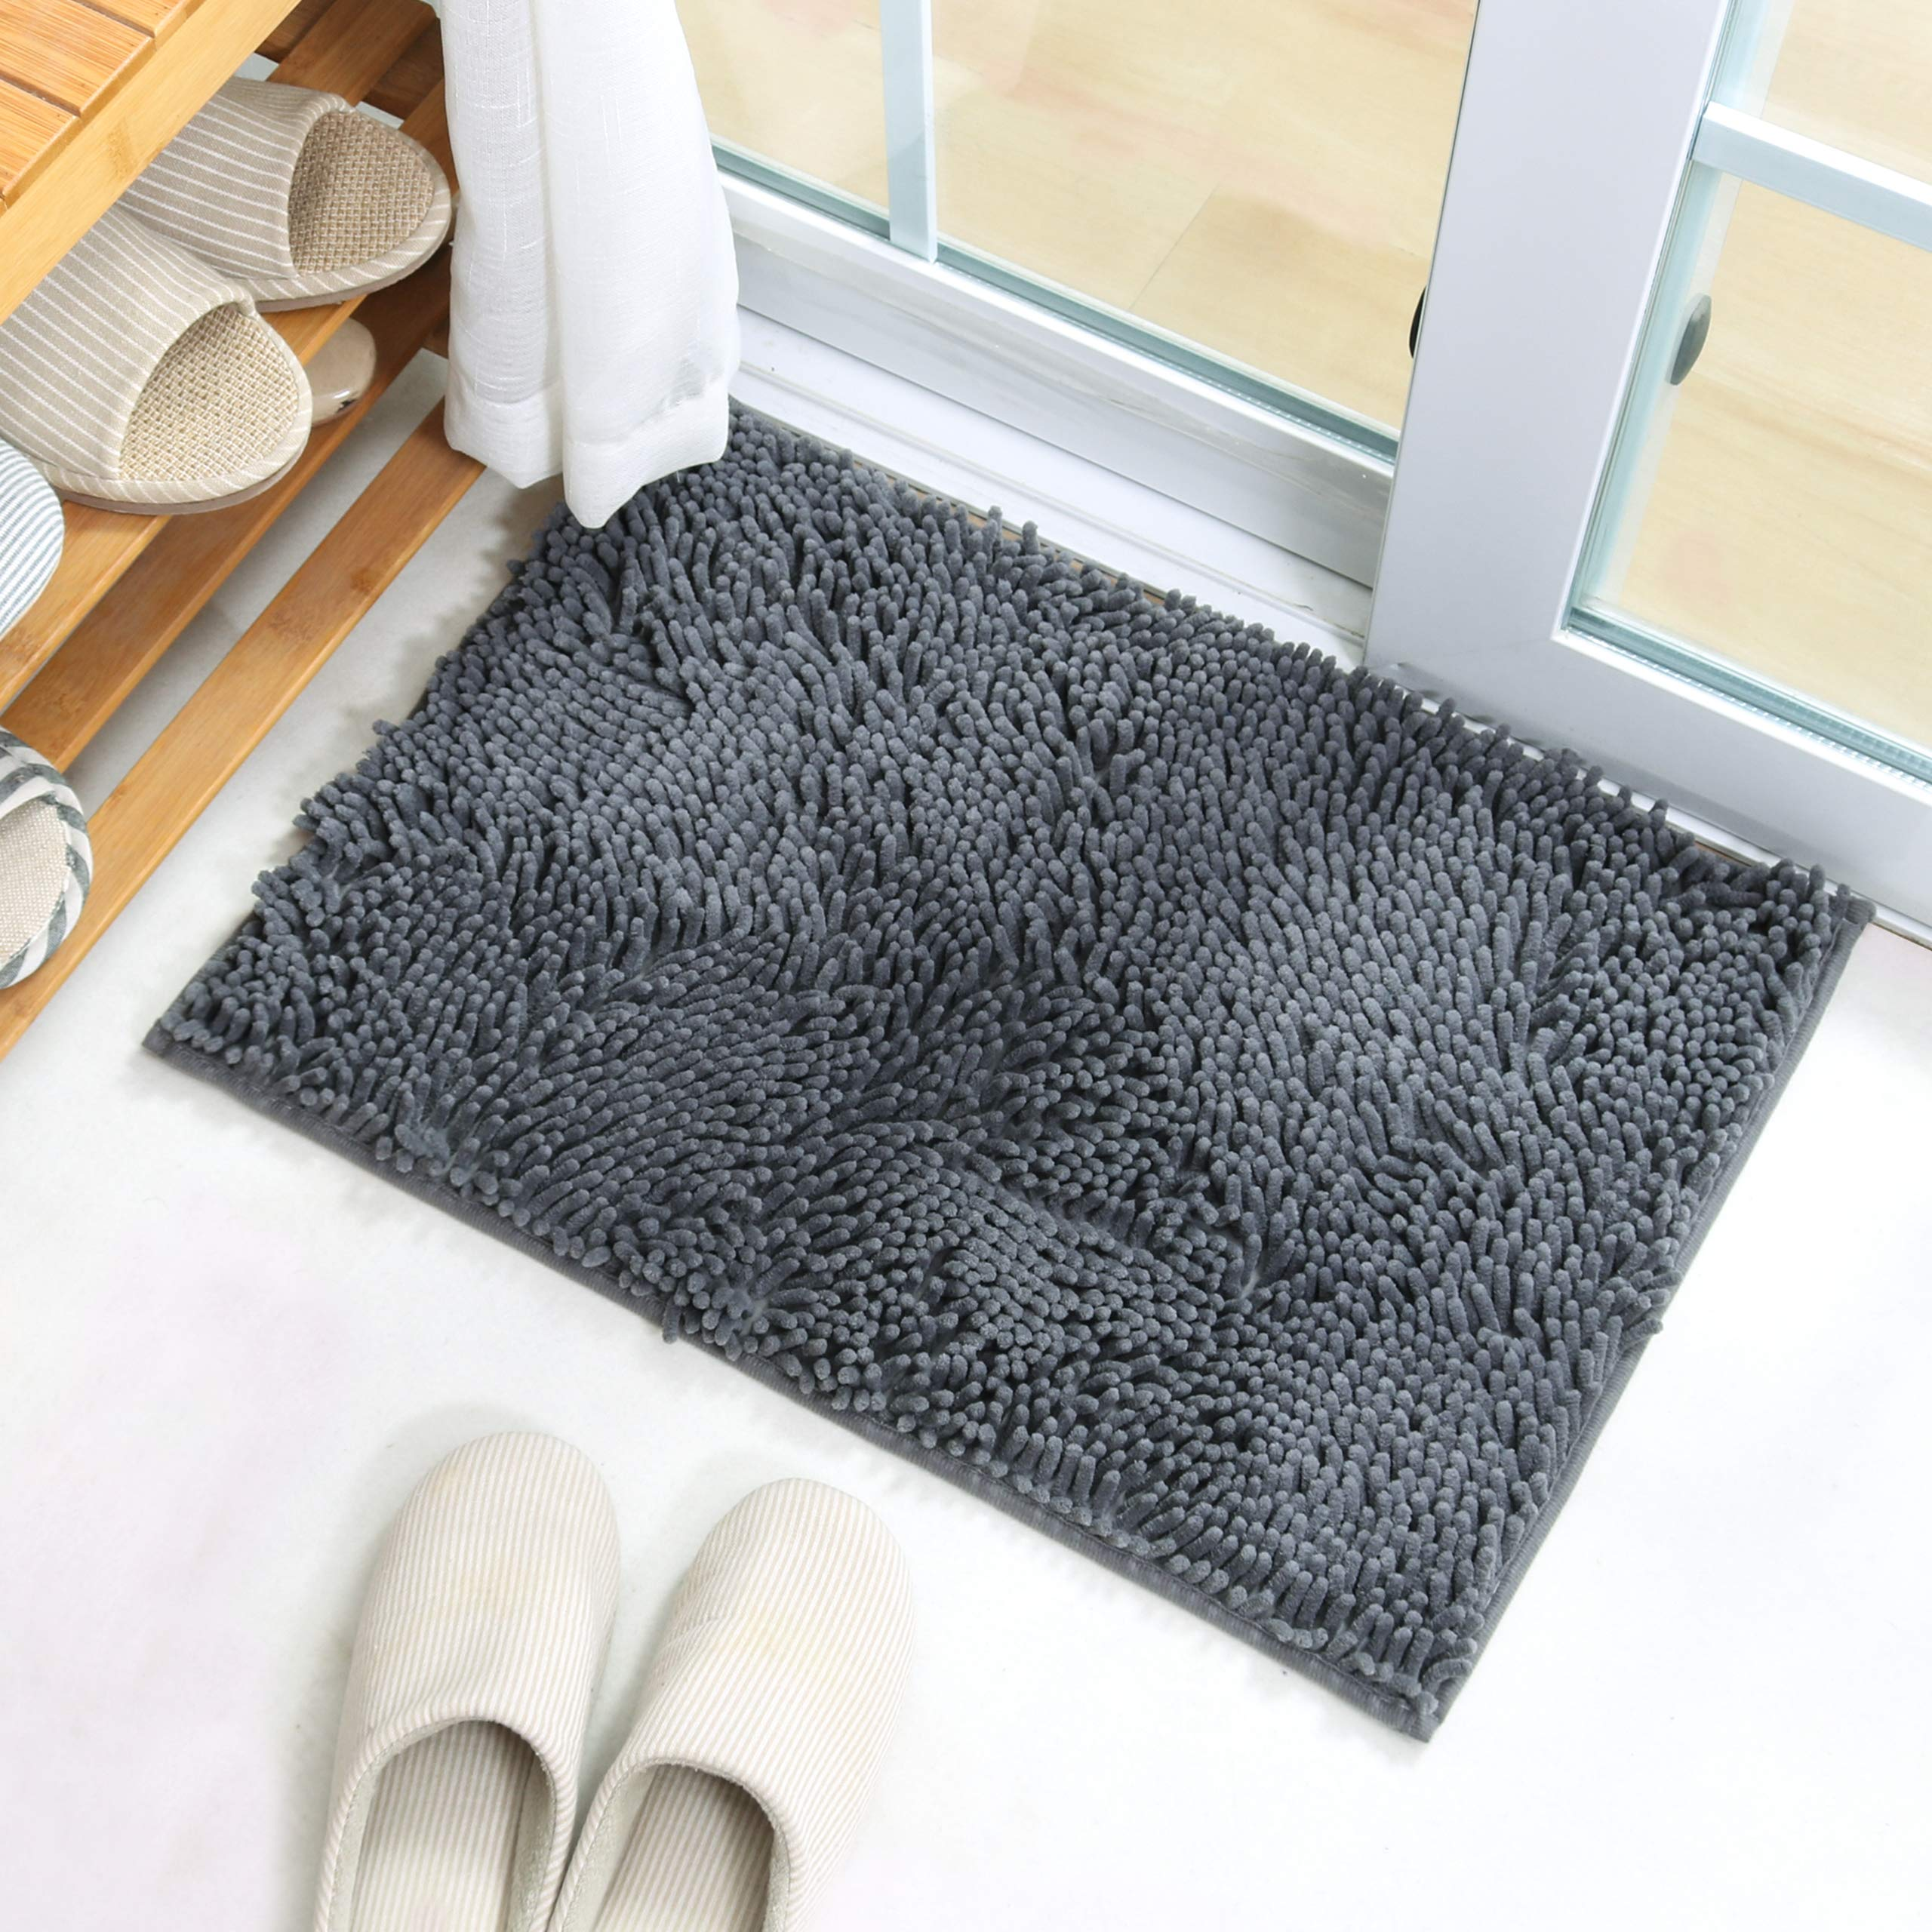 X·SOAR-Bath mats, Soft and Comfortable Bathroom Rugs,Absorbent,Shaggy and Fast Dry Bath Rugs, Non-Slip Kitchen mat.(20''×32'' inch, Iron) by X·SOAR (Image #5)